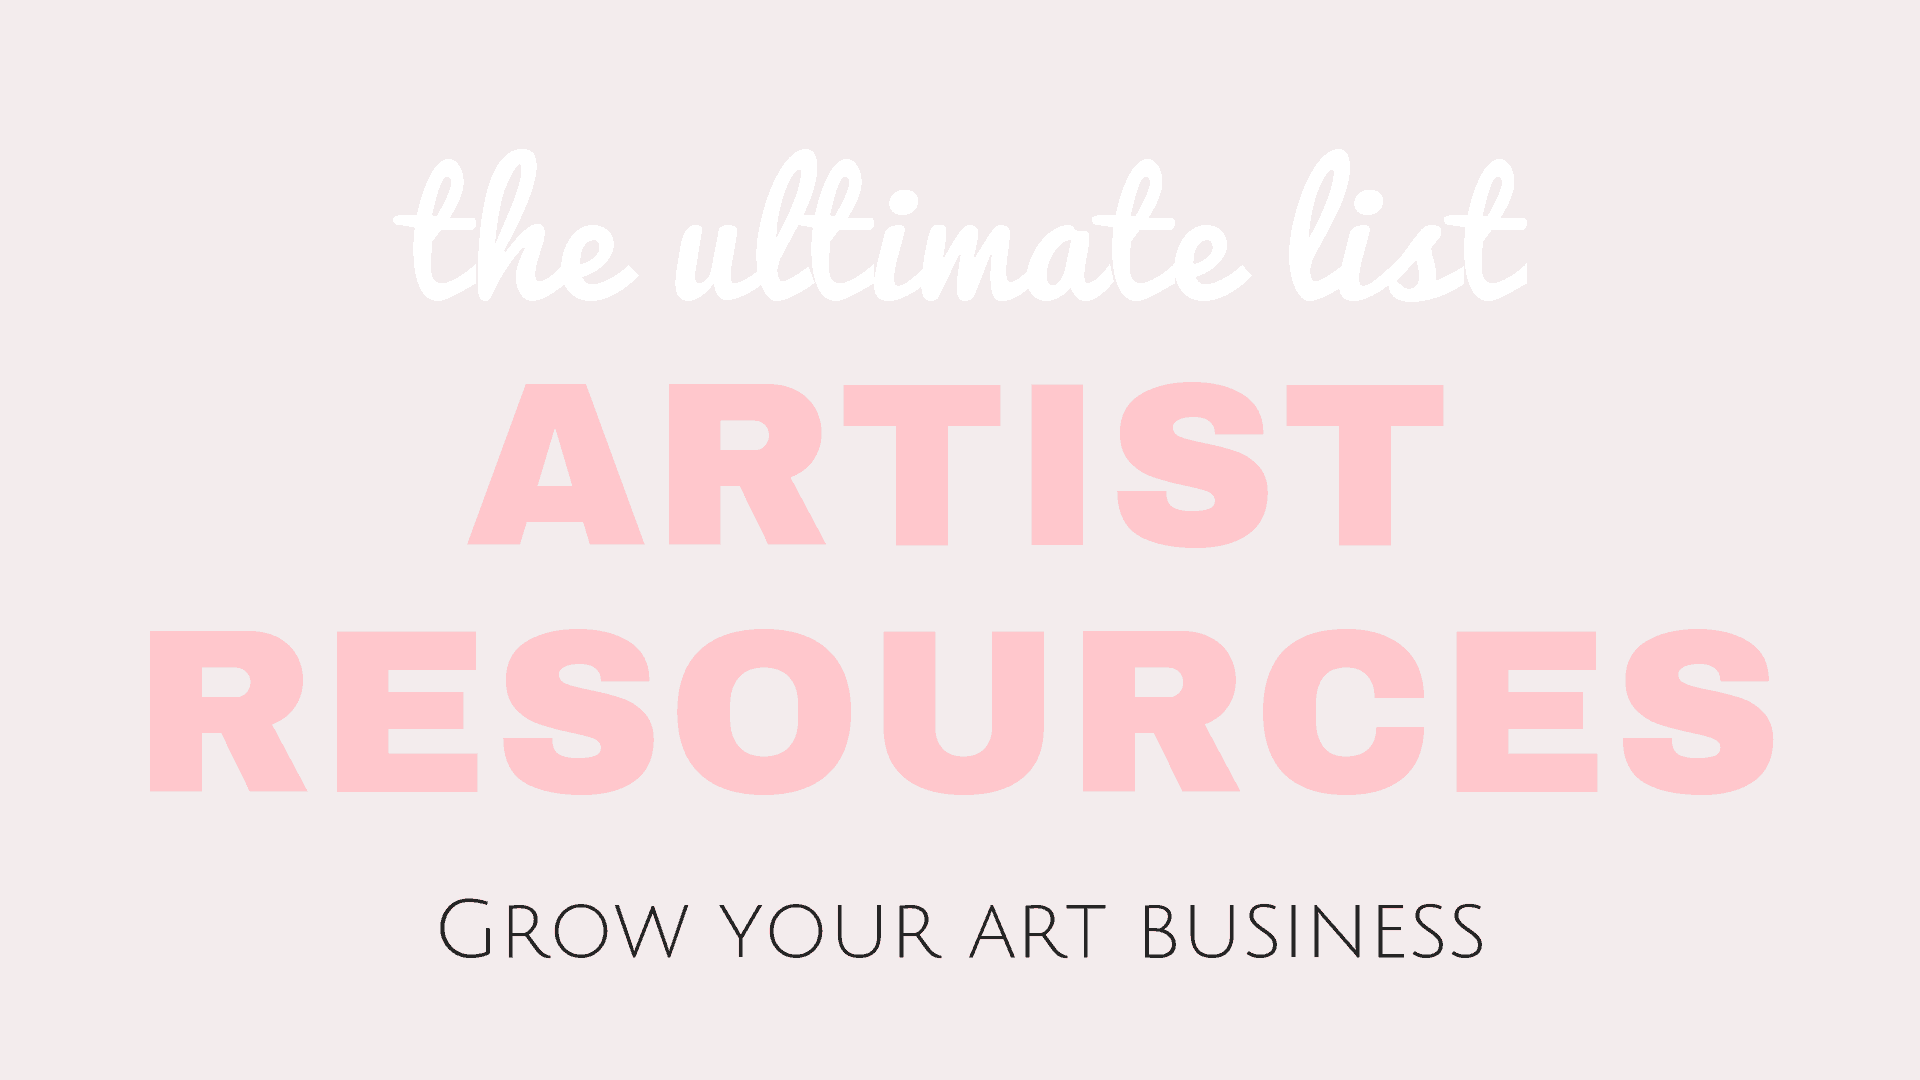 artist resources - grow your art business